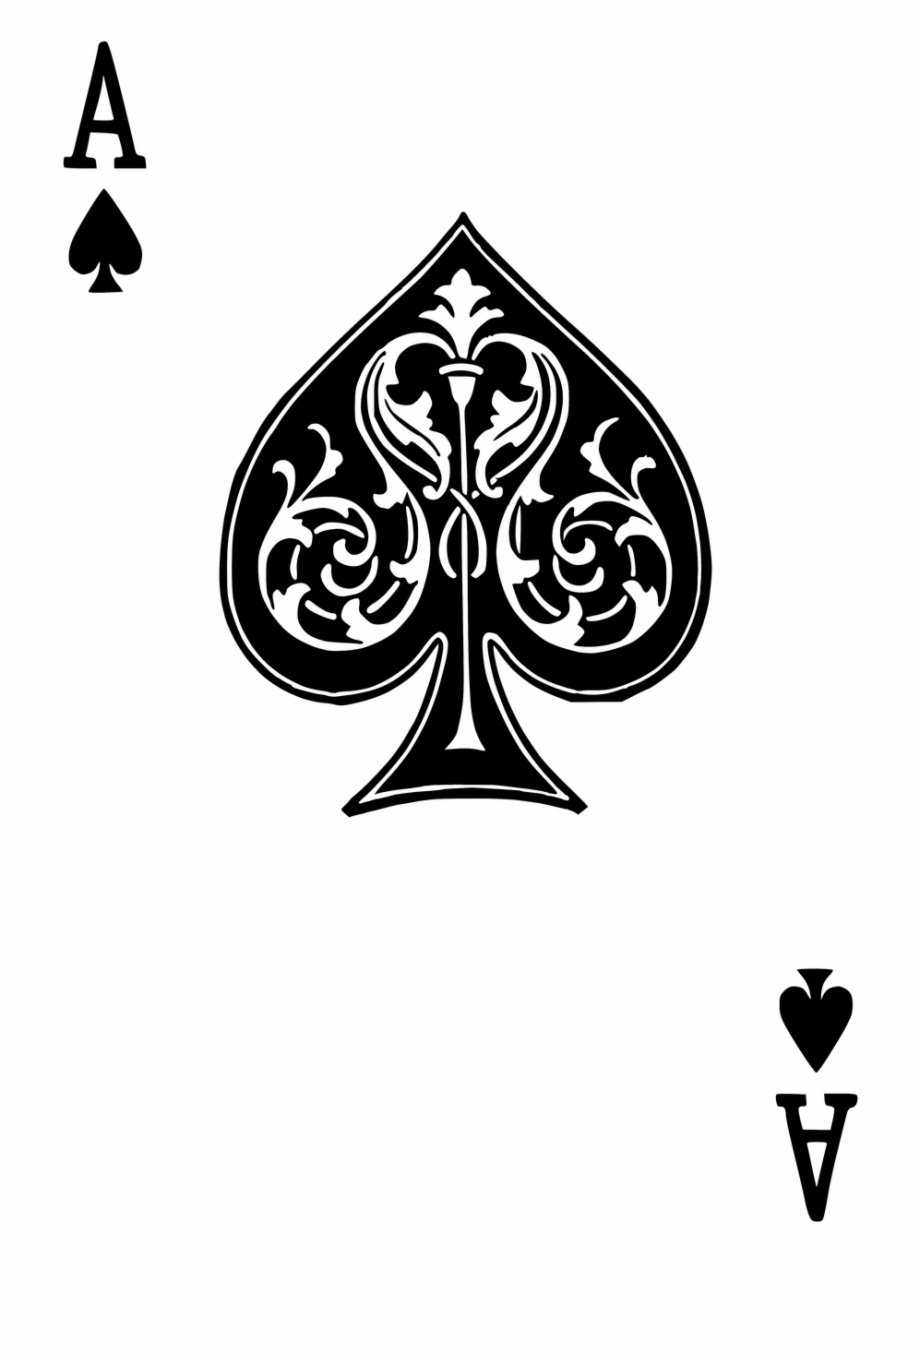 Ace Of Spades Png Free PNG Images & Clipart Download #2213111.